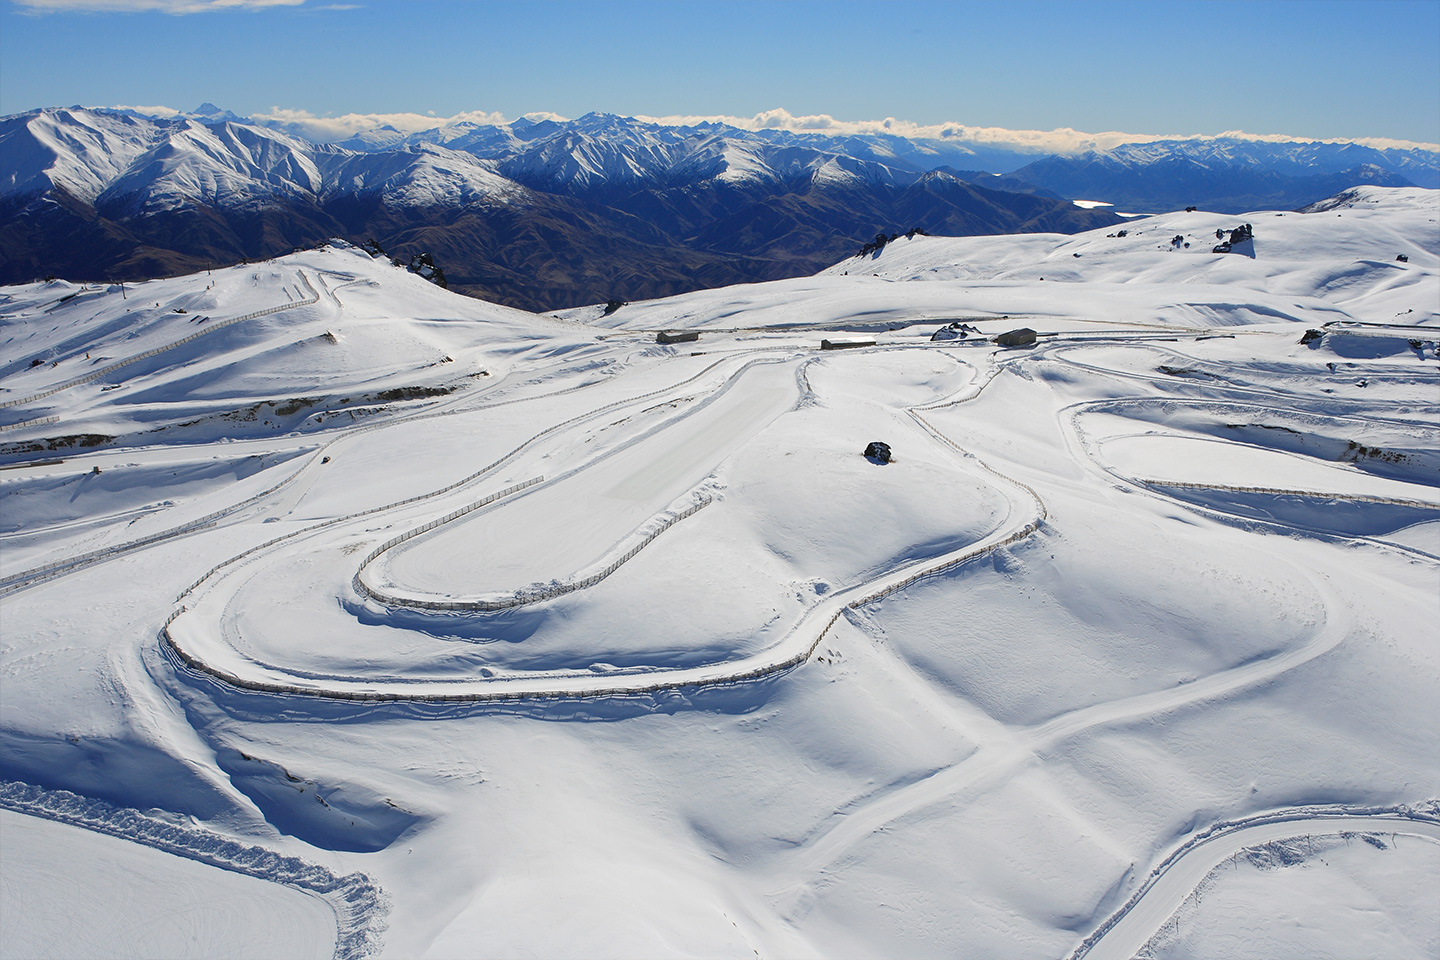 Snow and Ice race track - New Zealand on Ice